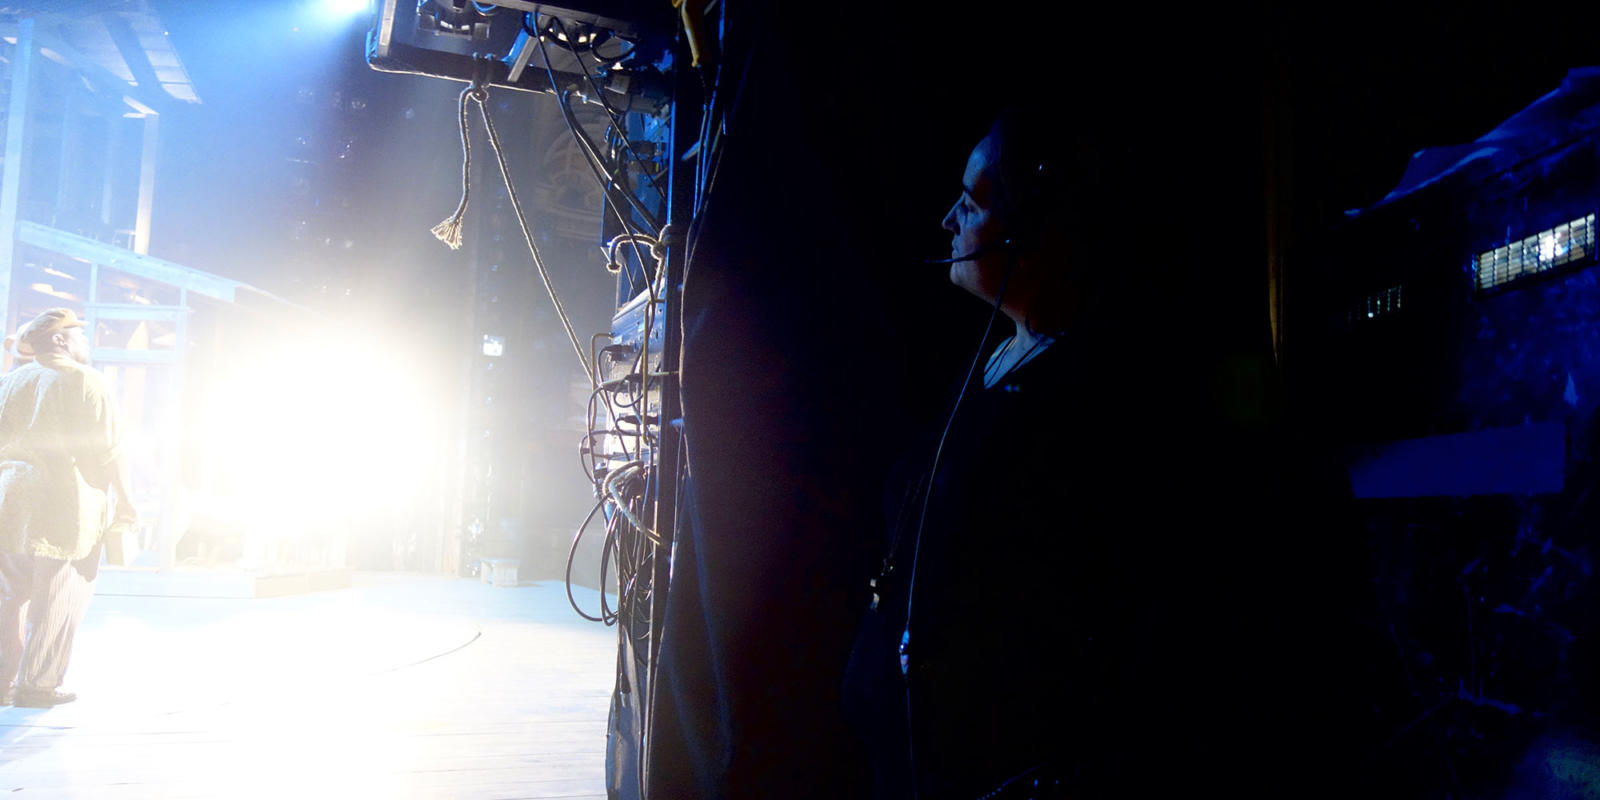 Stage manager Rosie Davis looks on from the wings